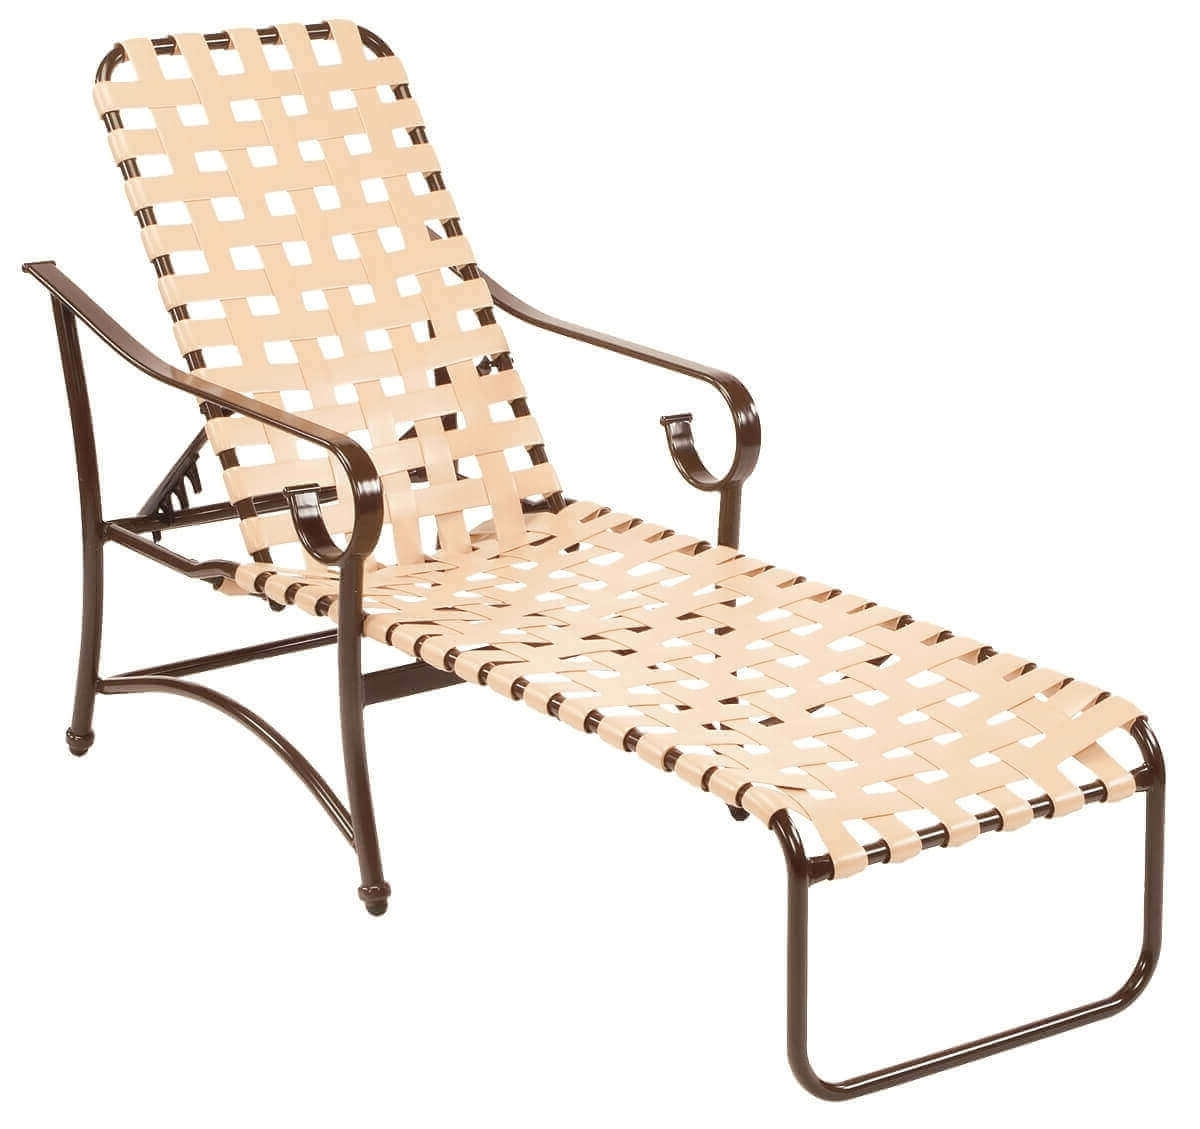 Barbados Cross Weave Vinyl Strap Chaise Lounge – Commercial Regarding Most Up To Date Chaise Lounge Strap Chairs (View 3 of 15)